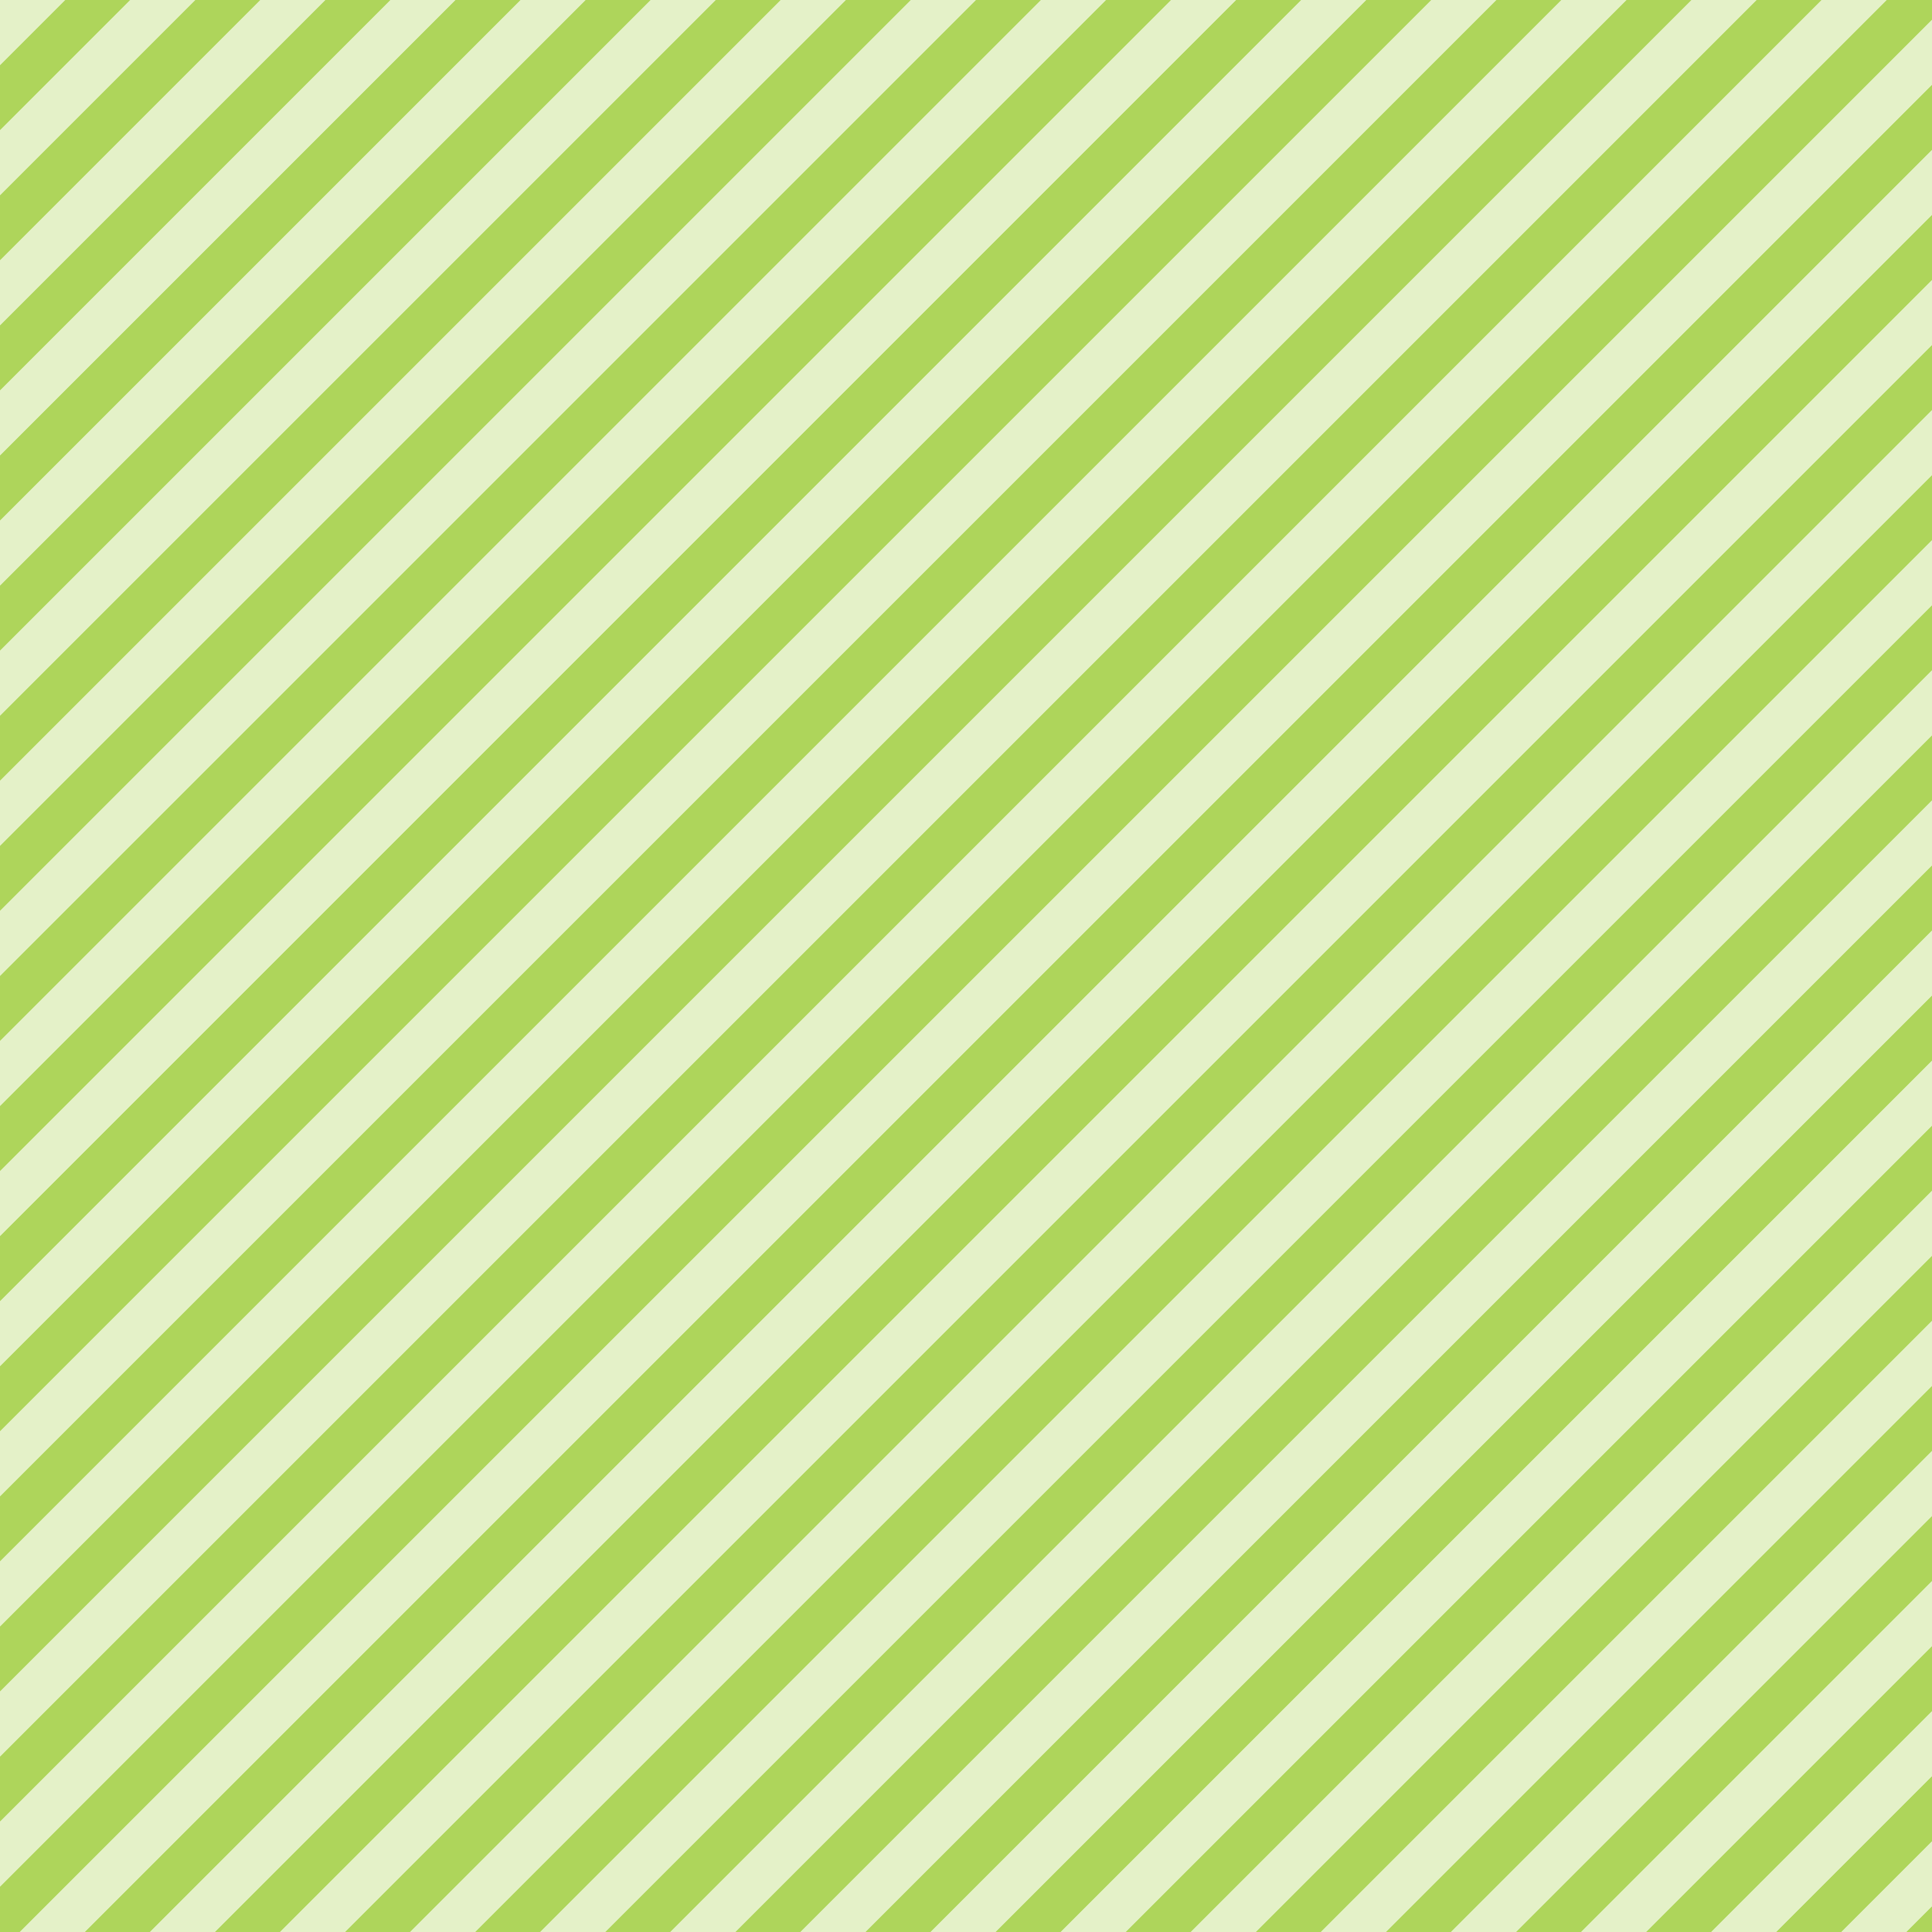 scrapbooking paper green and white diagonal stripes free image. Black Bedroom Furniture Sets. Home Design Ideas